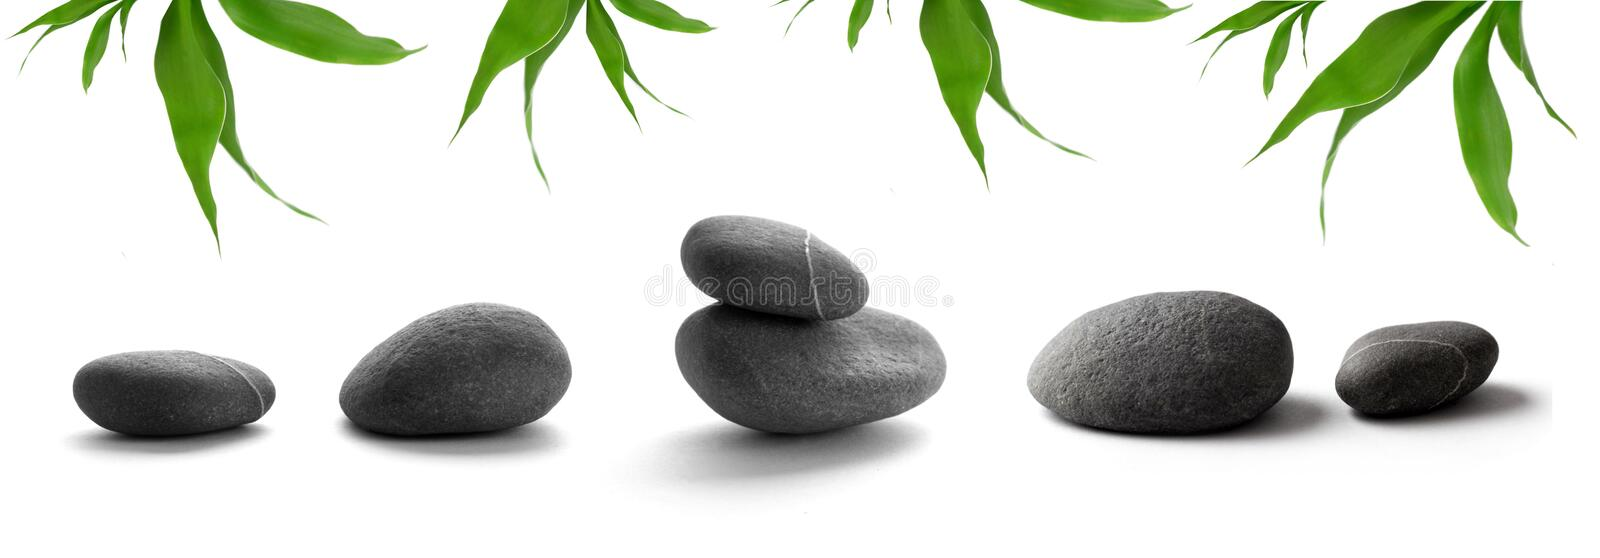 SPA still life. Zen-like stones. pebbles and bamboo leaves on white background royalty free stock photos